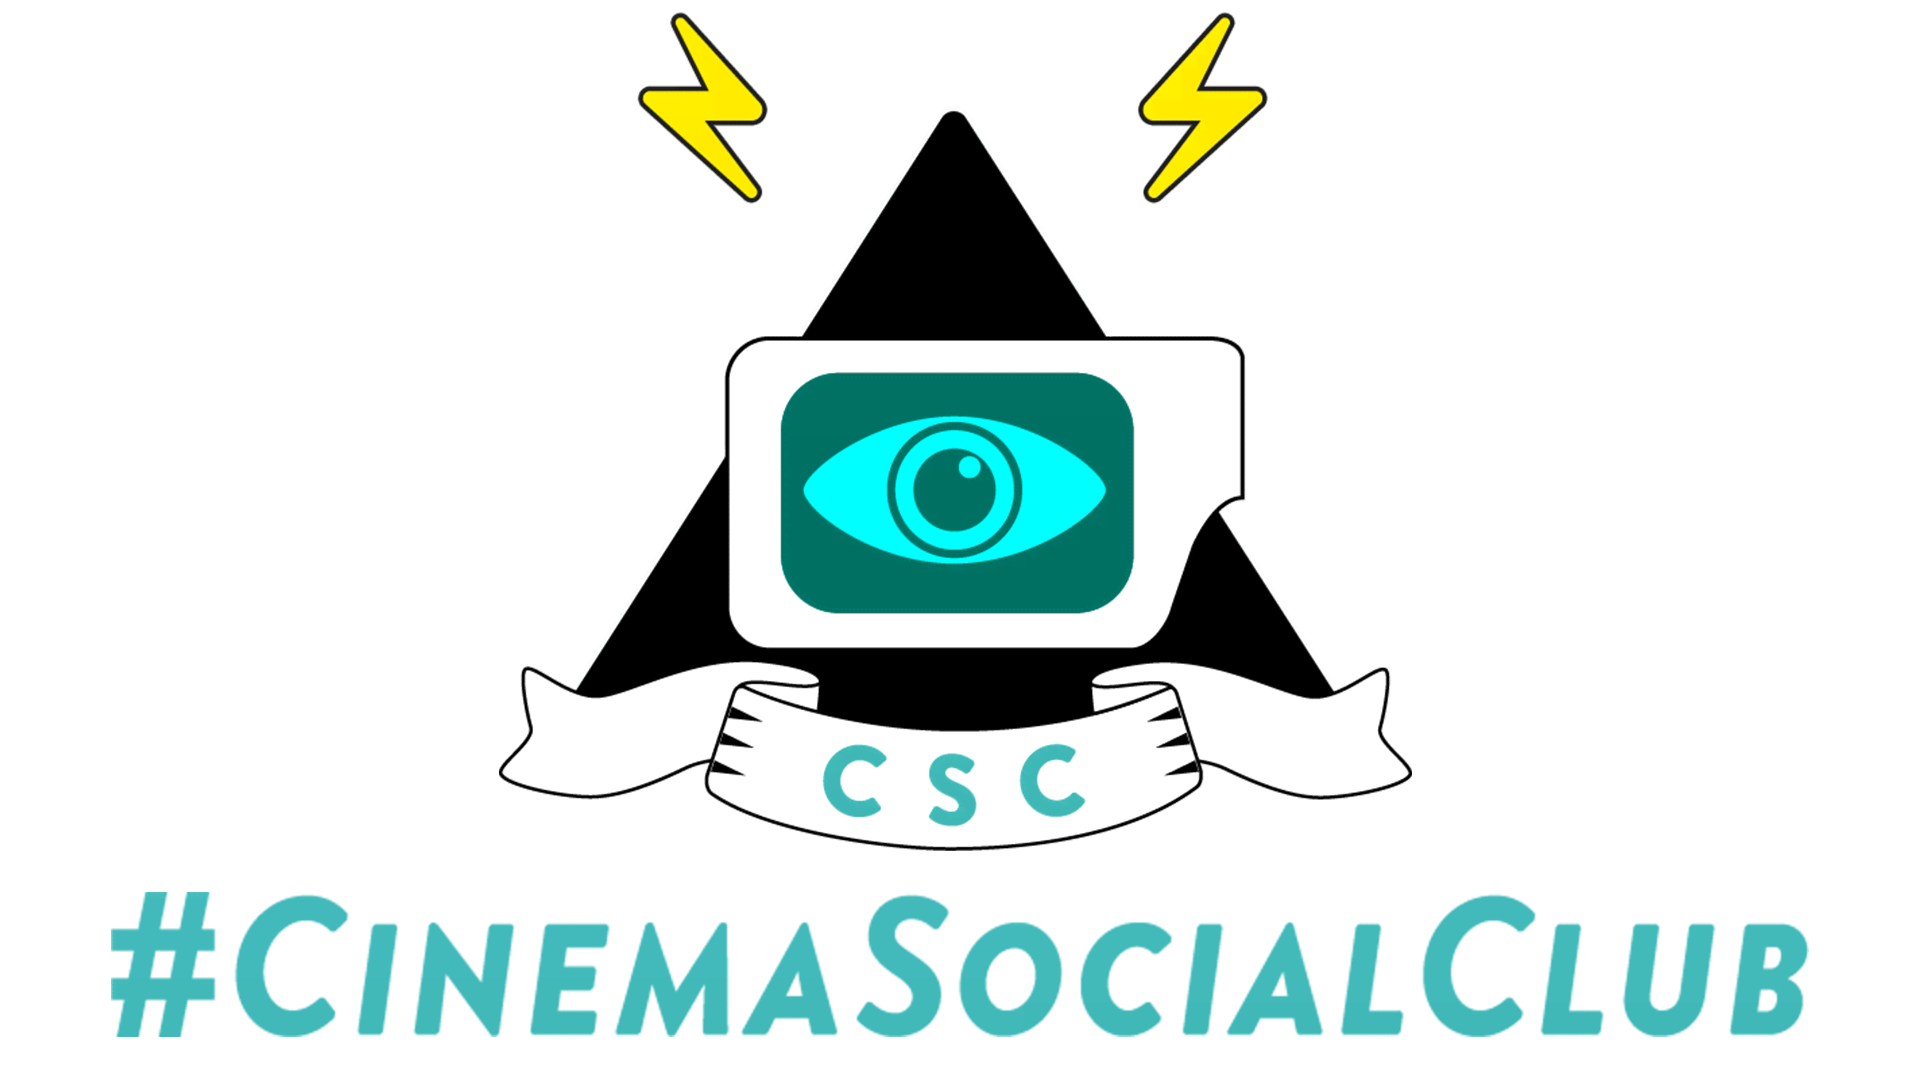 DON'T LET THE COMICS HAVE ALL THE FUN - #CINEMASOCIALCLUB